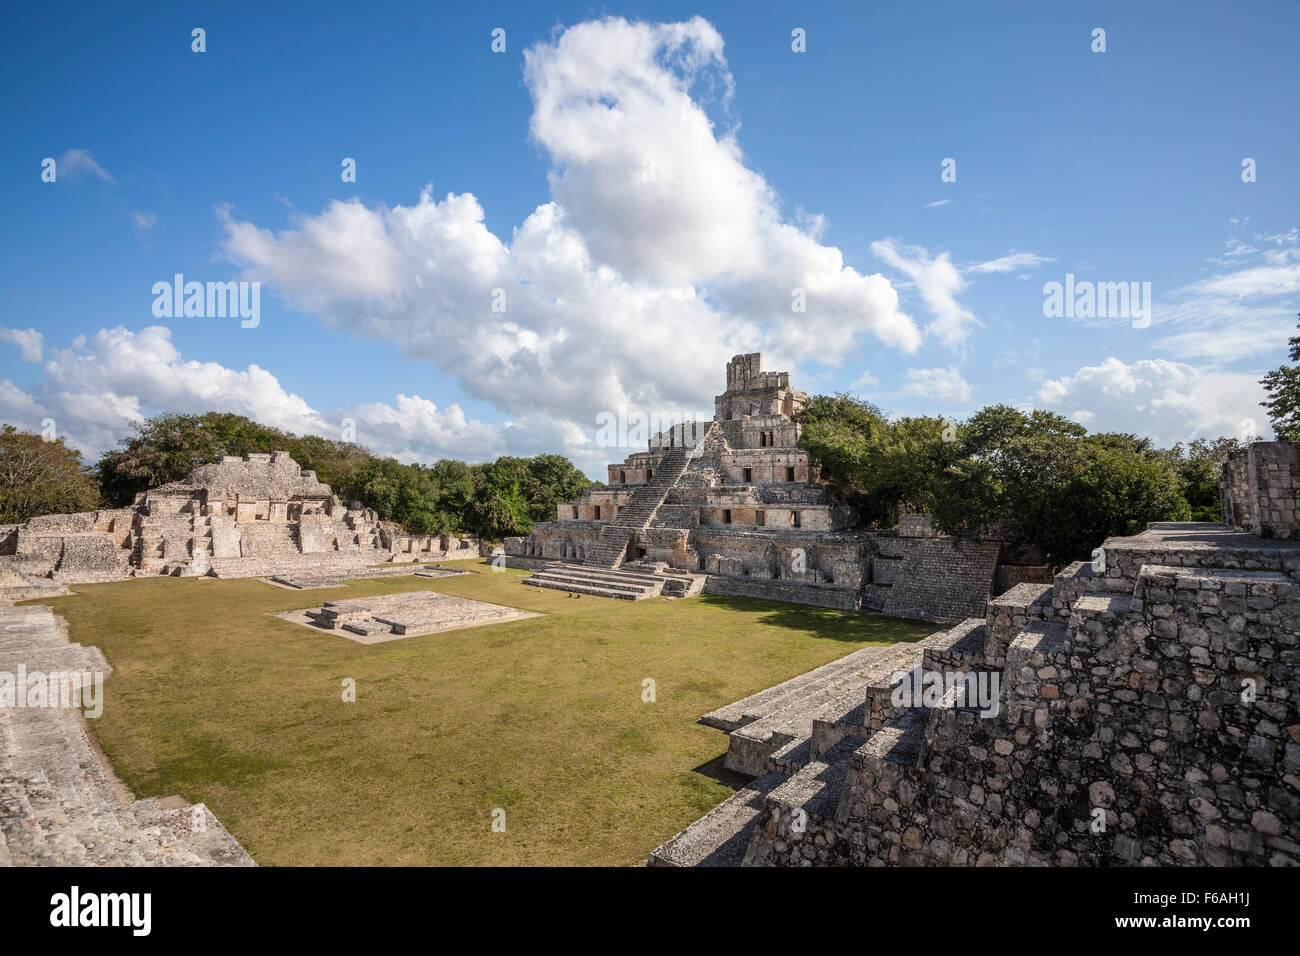 The Five Story Pyramid and main plaza of the Mayan ruins of Edzna, Campeche, Mexico. - Stock Image